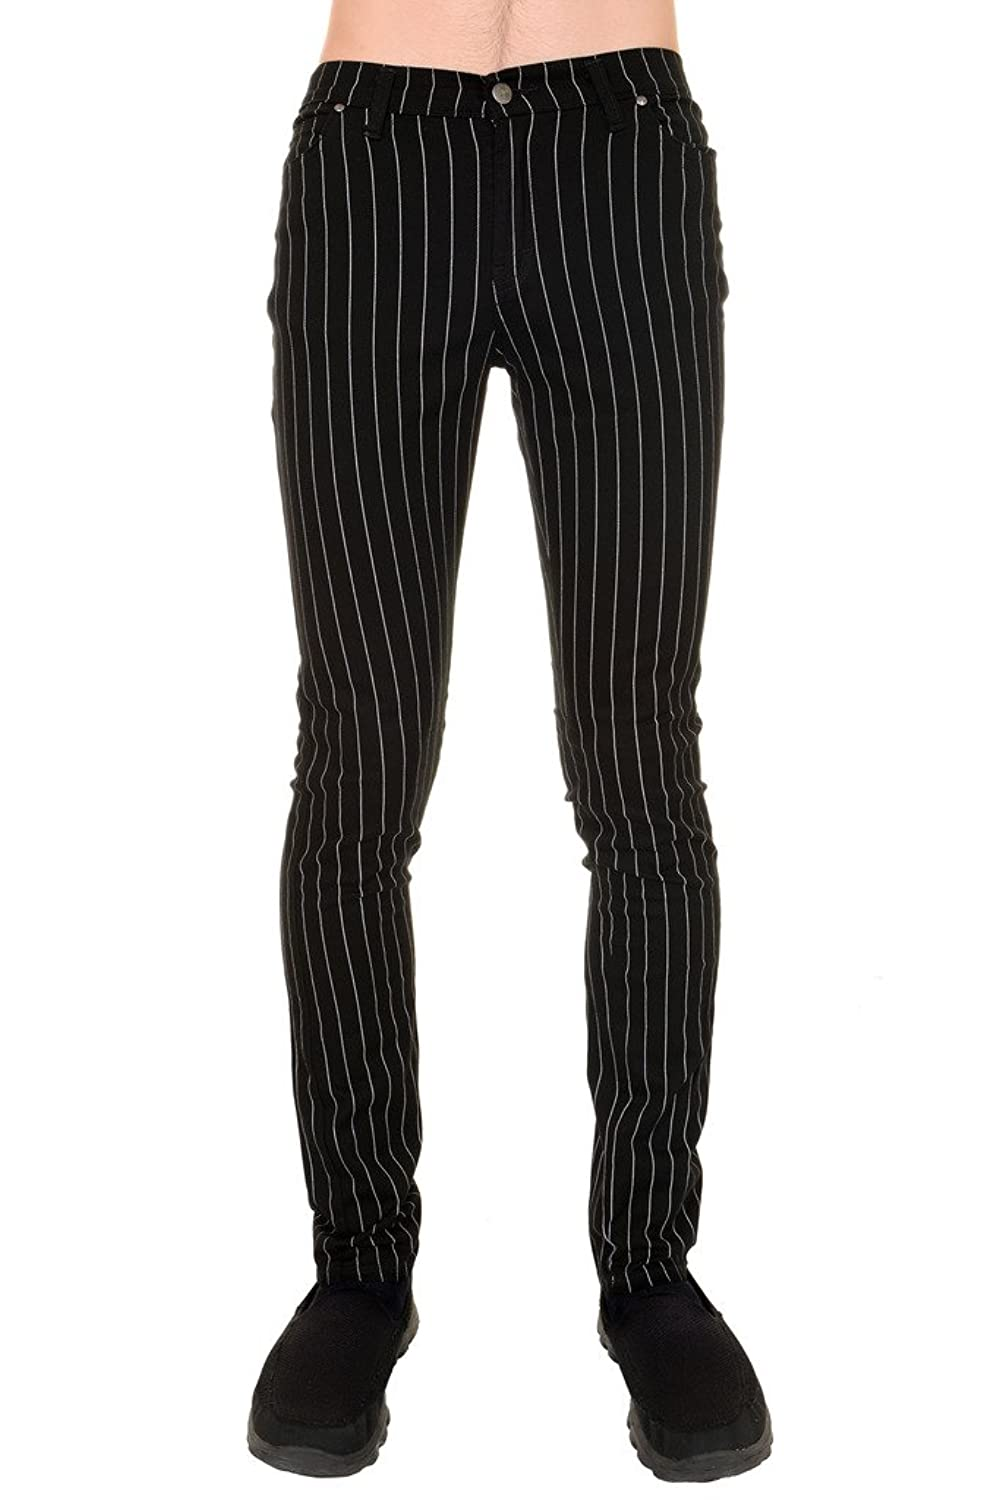 Men's Steampink Pants & Trousers Run Fly Retro 60s 70s Mod Black White Pin Striped Stretch Skinny Jeans $51.95 AT vintagedancer.com